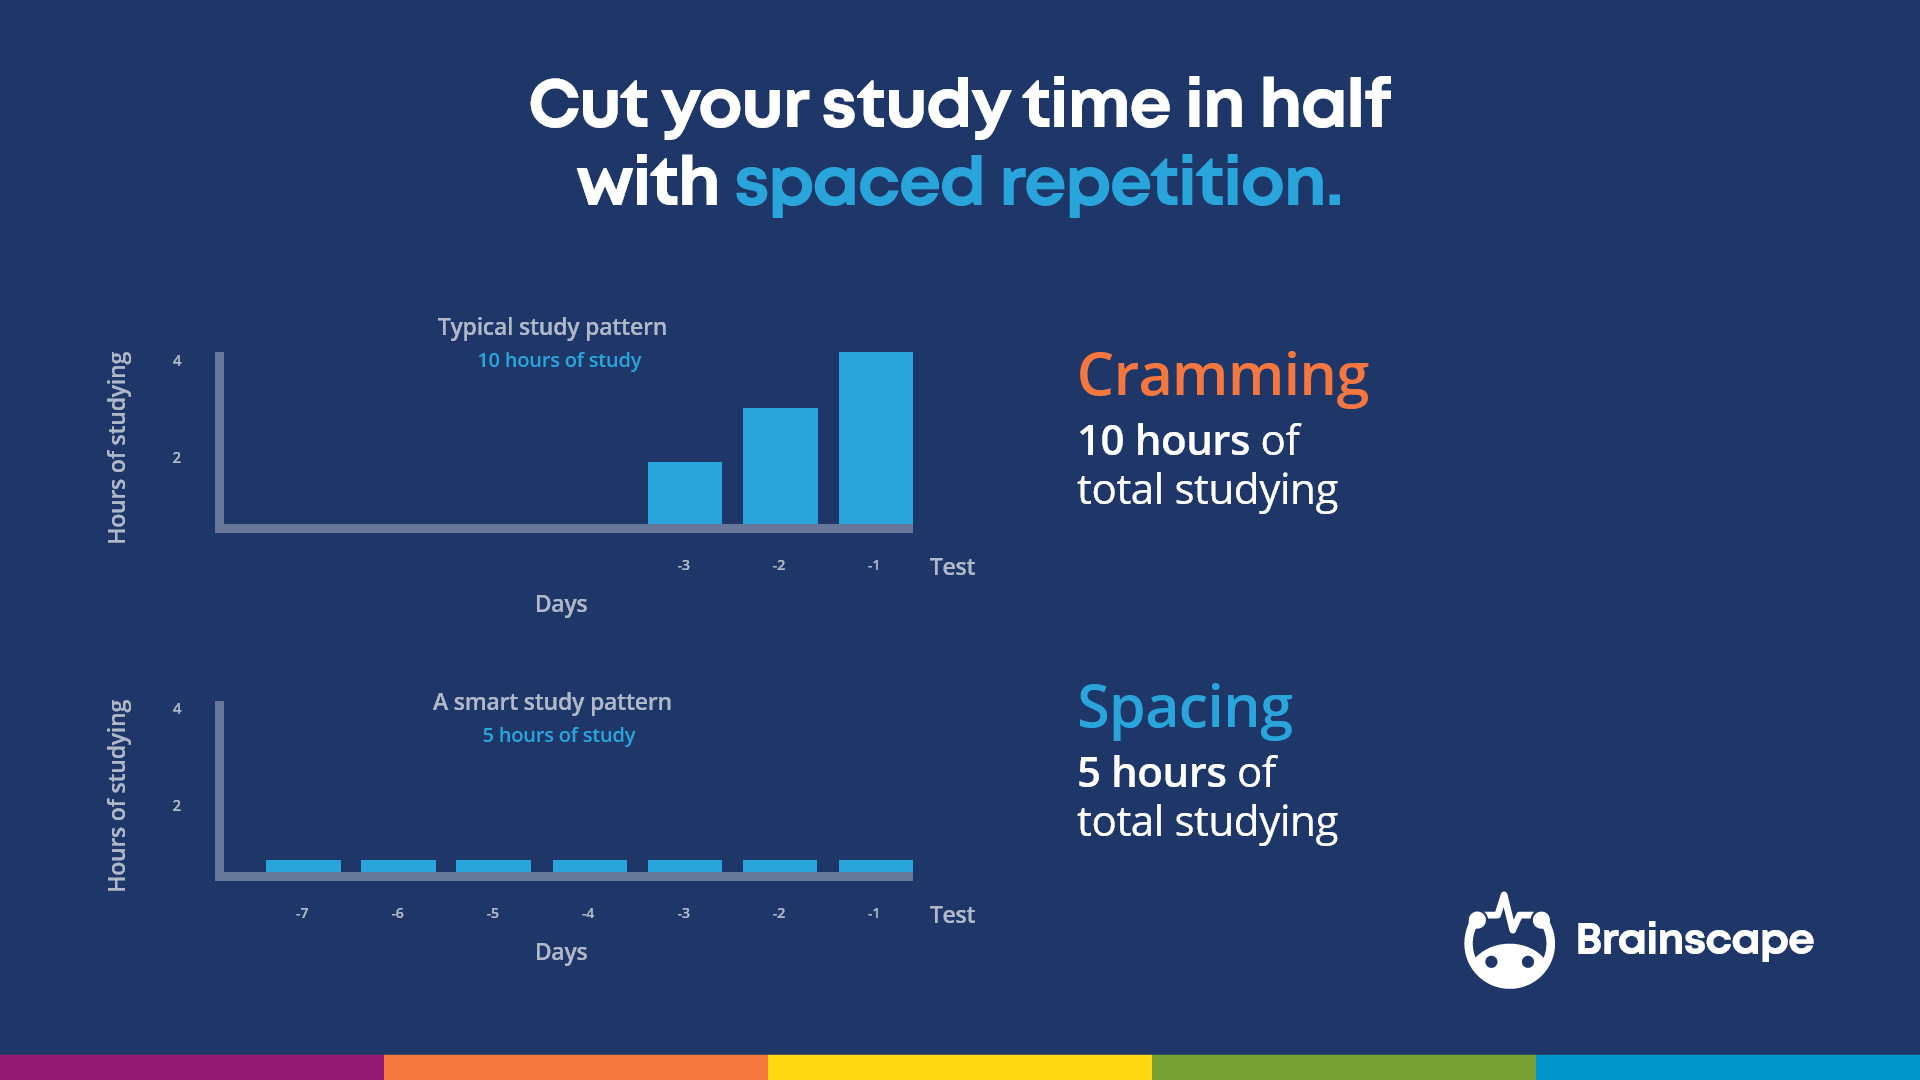 Spaced repetition cuts study time in half graphic